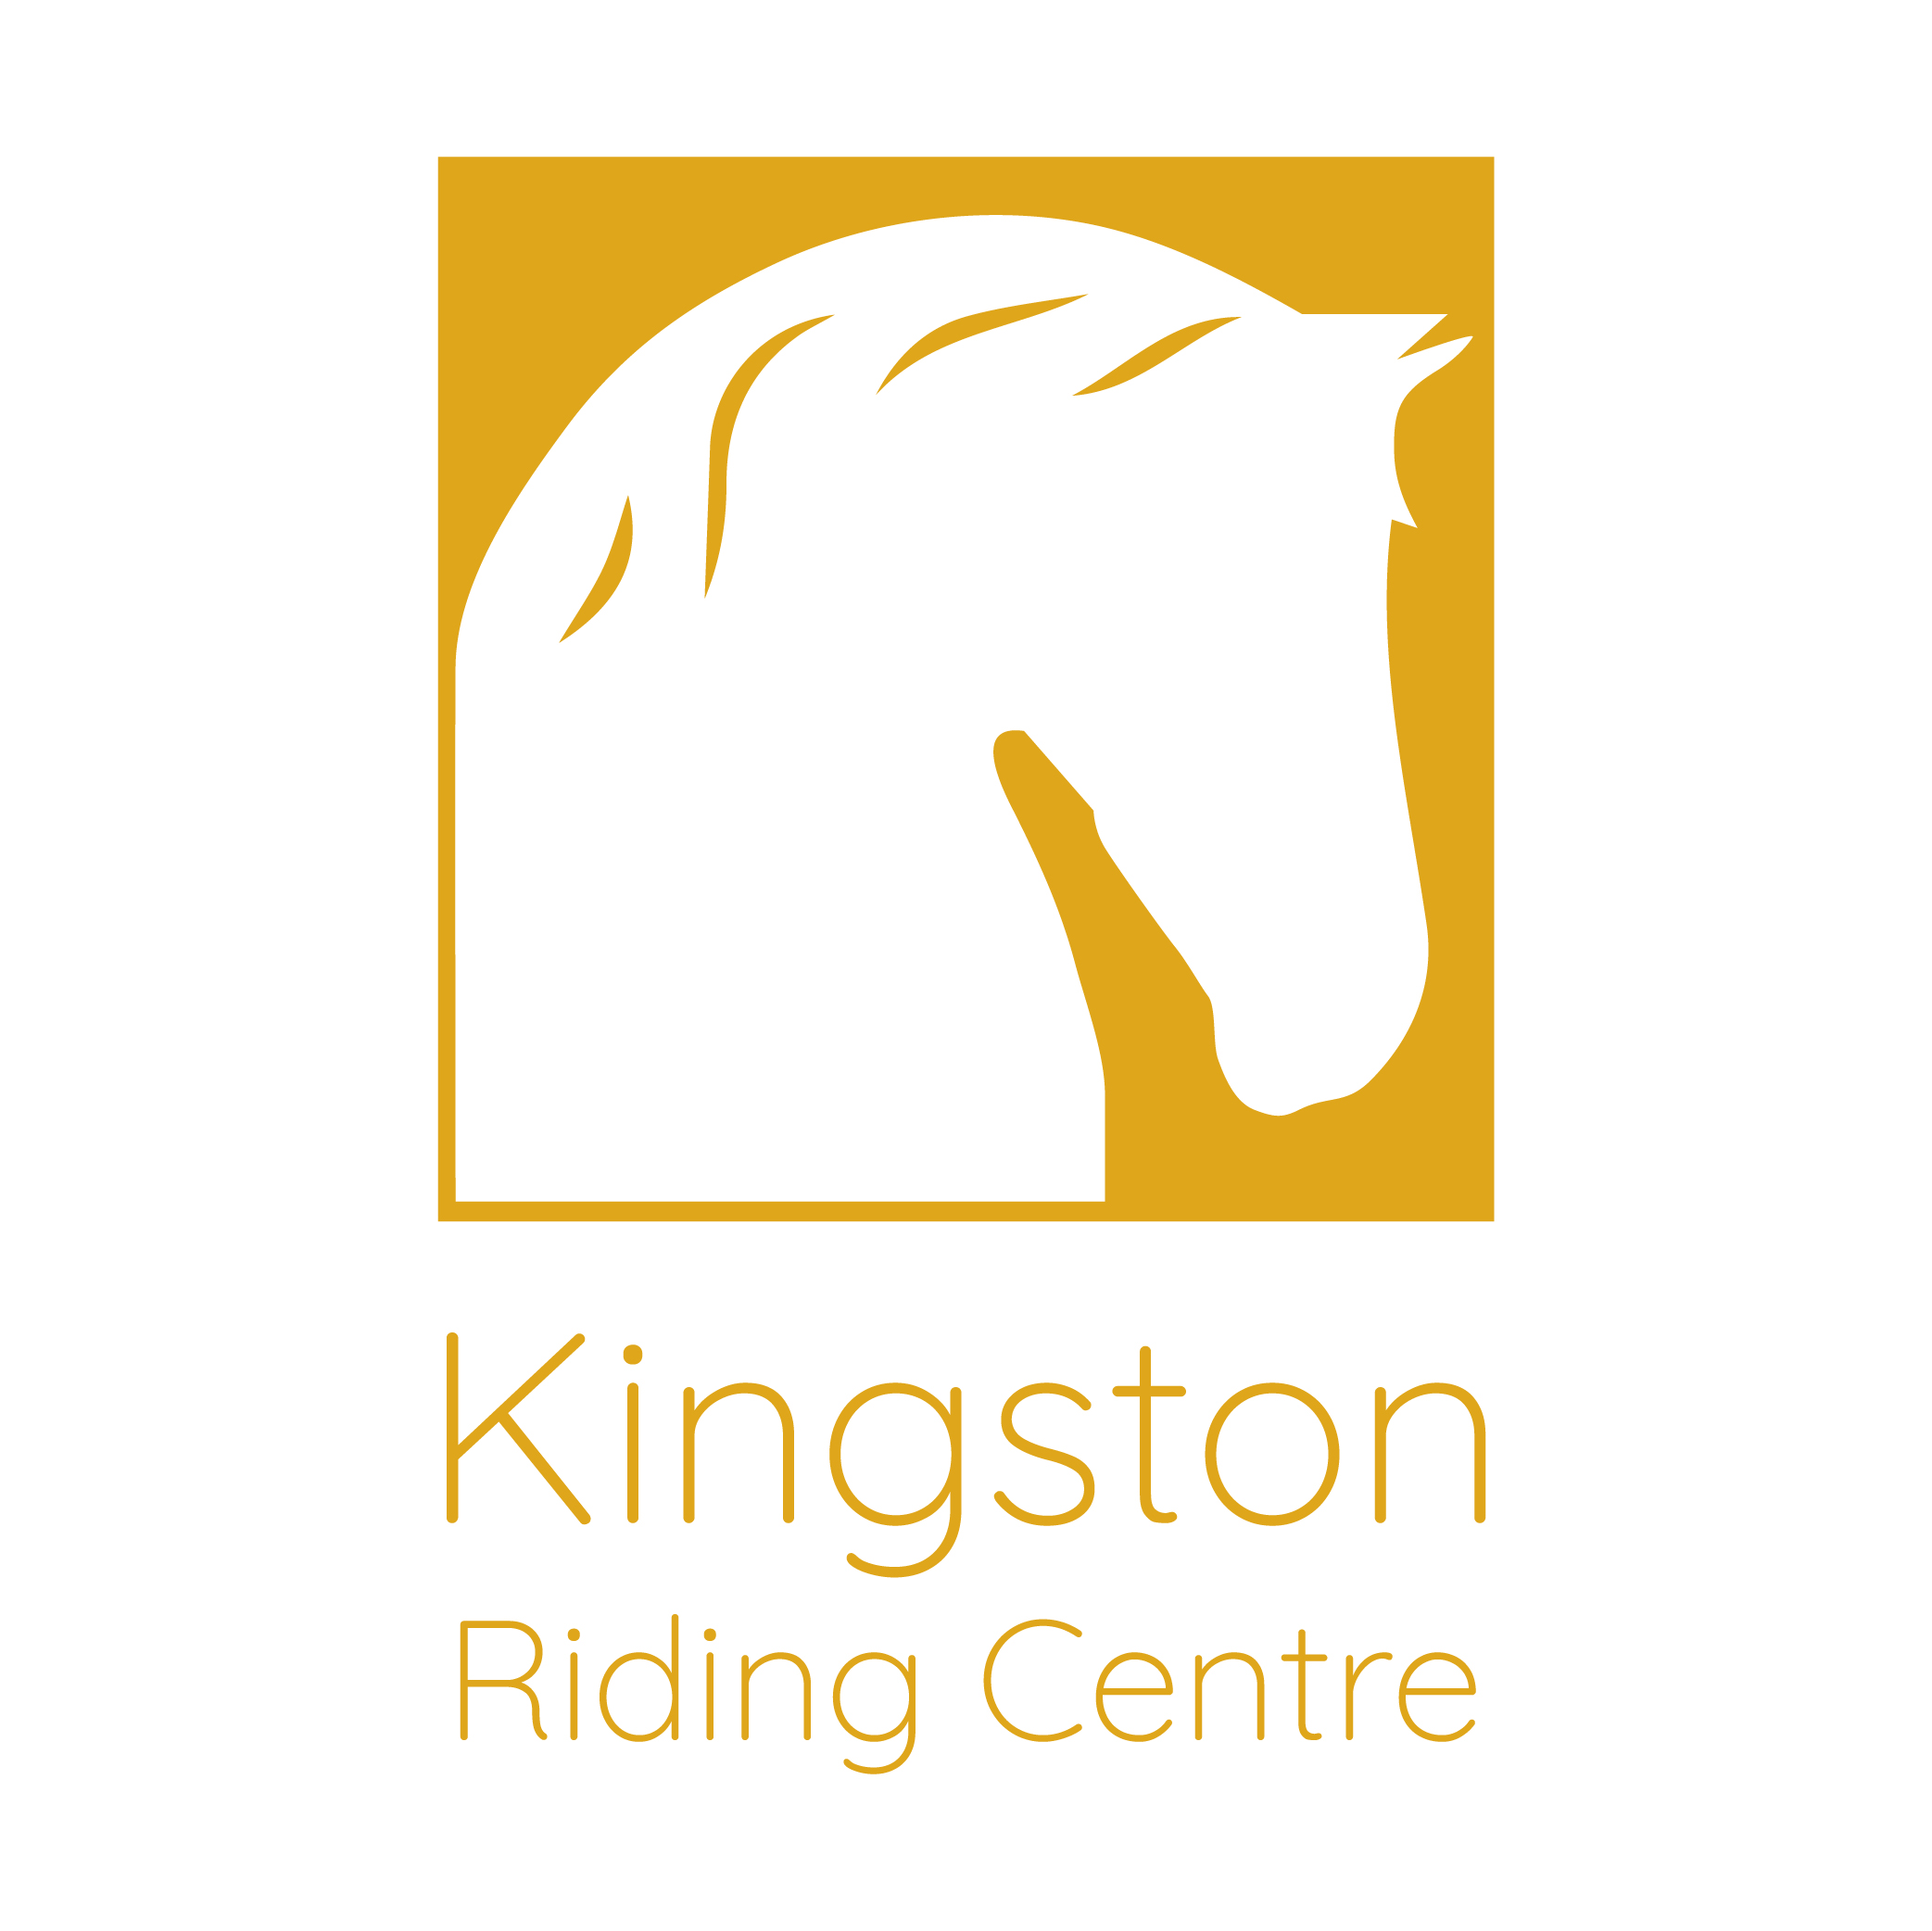 This is an image showing Kingston Riding Centres logo